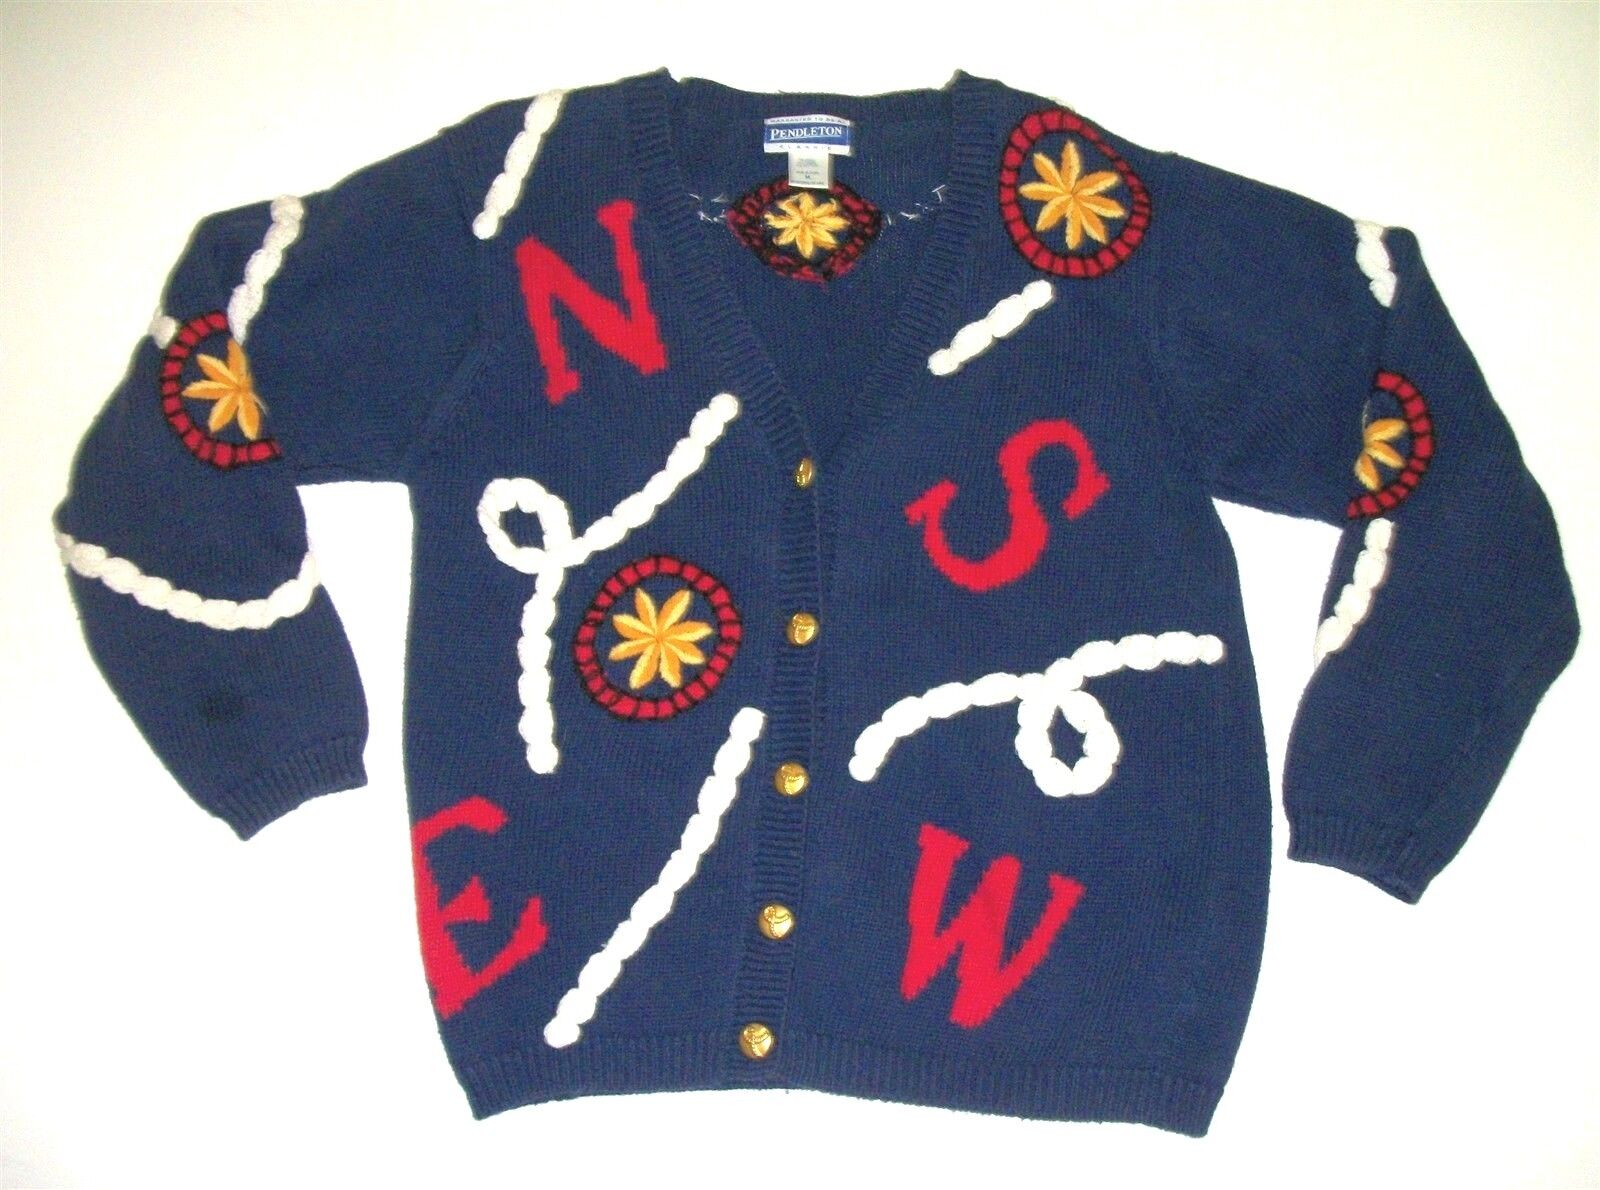 Pendleton Cardigan Sweater Nautical Ship's Compass Rigging Rope Cotton Blend M